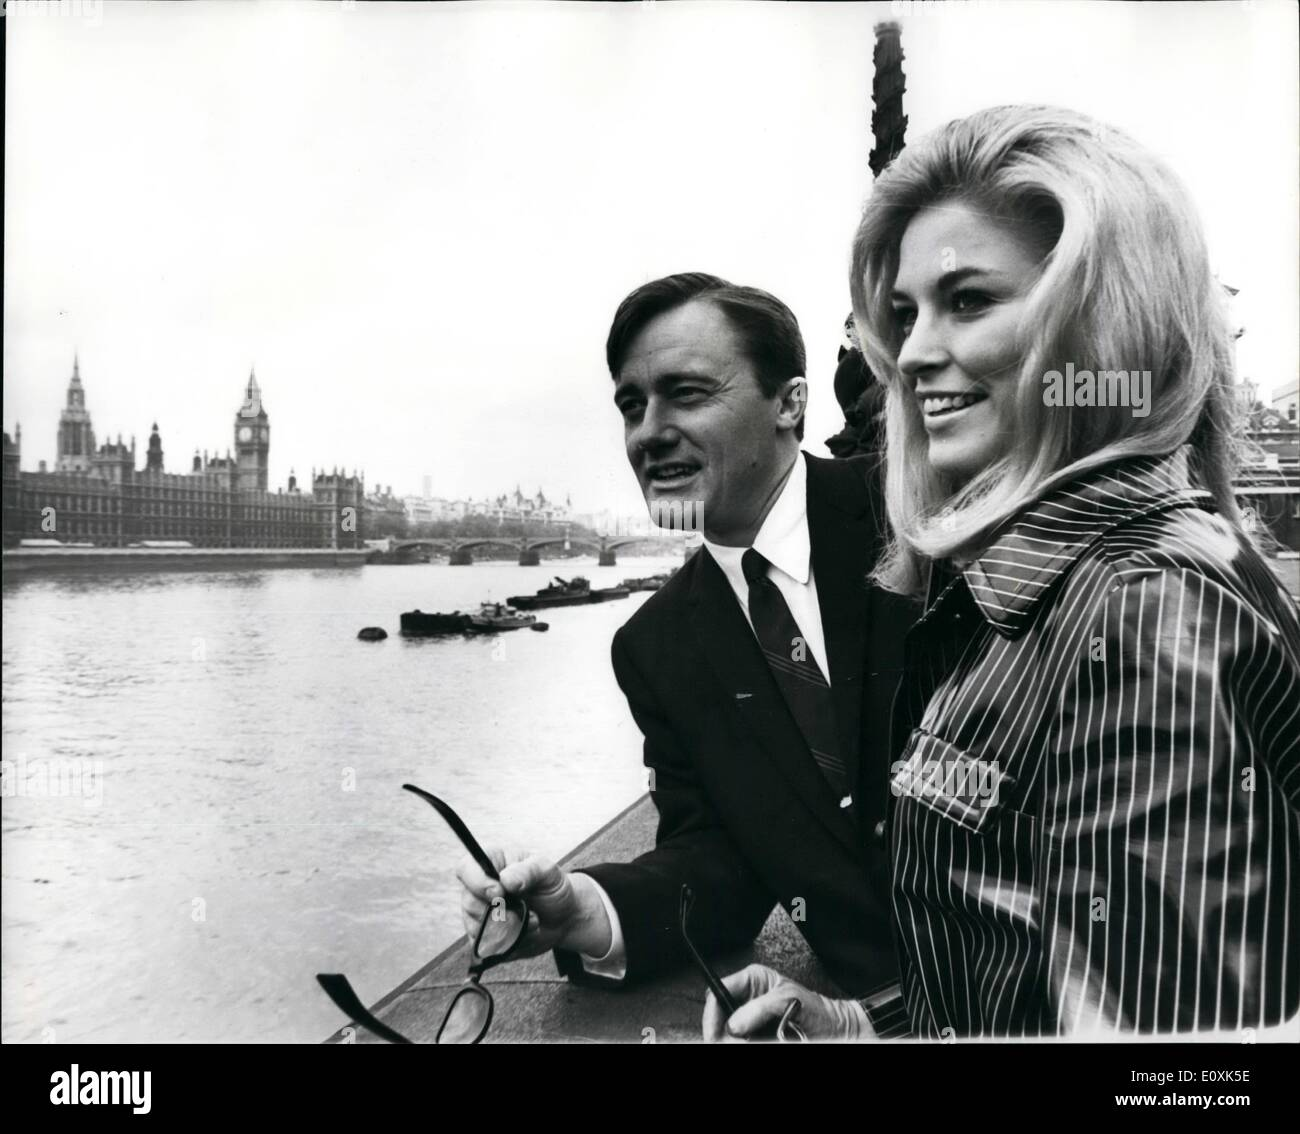 May 05, 1967 - The Man From U.N.C.L.E Is Guide. Robert Vaughn, the man from U.N.C.L.E - was being guide in London to a beautiful young American girl from Los Angeles called Karen Carlson, who won a London holiday with him as a TV competition prize. Photo Shows:- Robert Vaughn pictured in London with Karen Carlson, showing the House of Parliament in the background. - Stock Image